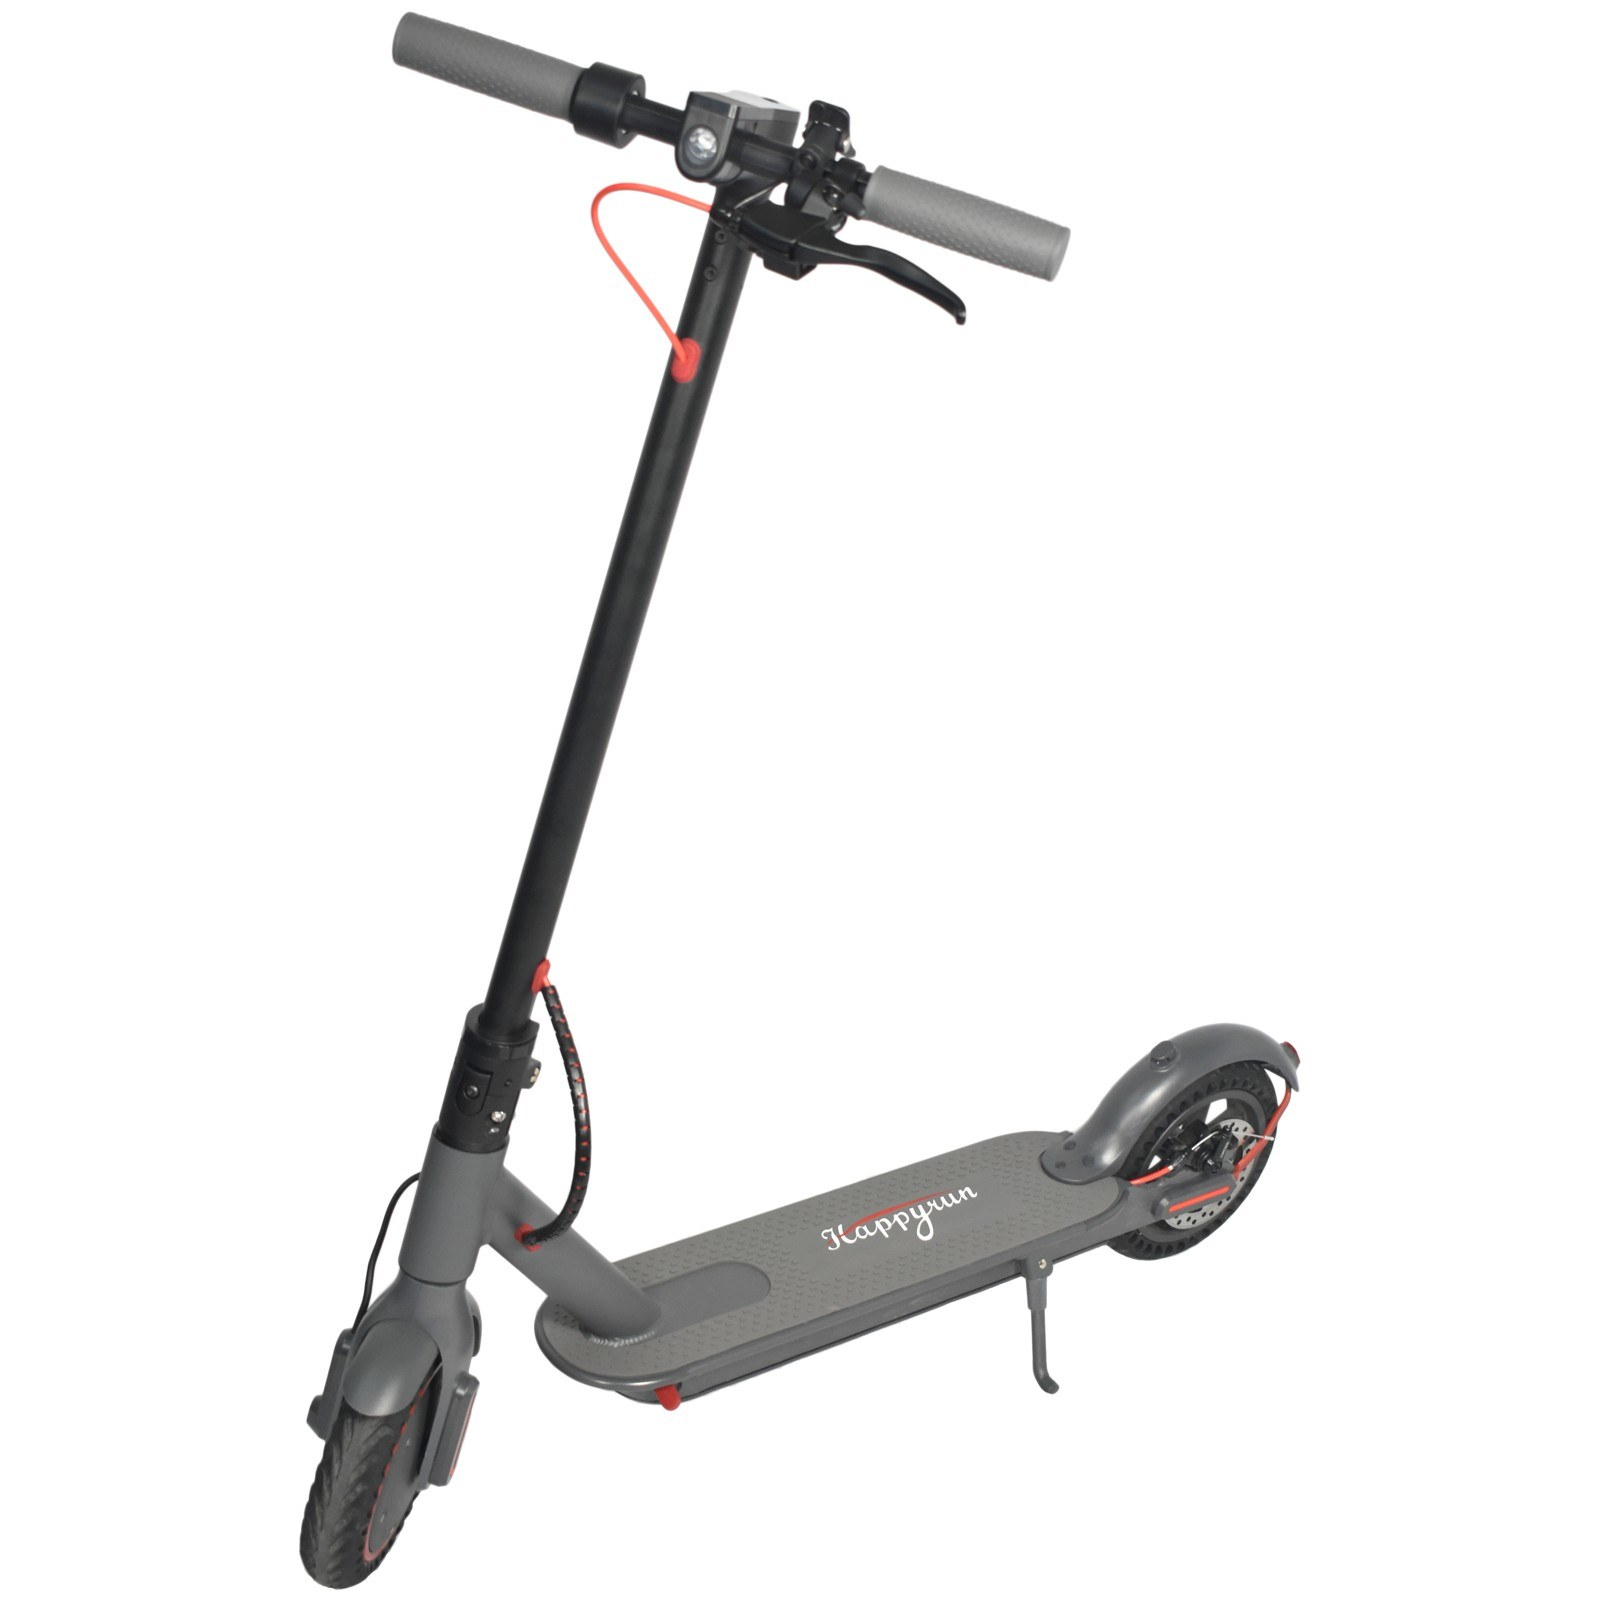 cafago.com - 50% OFF Happyrun HR-15 8.5 Inch 2 Wheel Electric Scooter,free shipping+$338.27